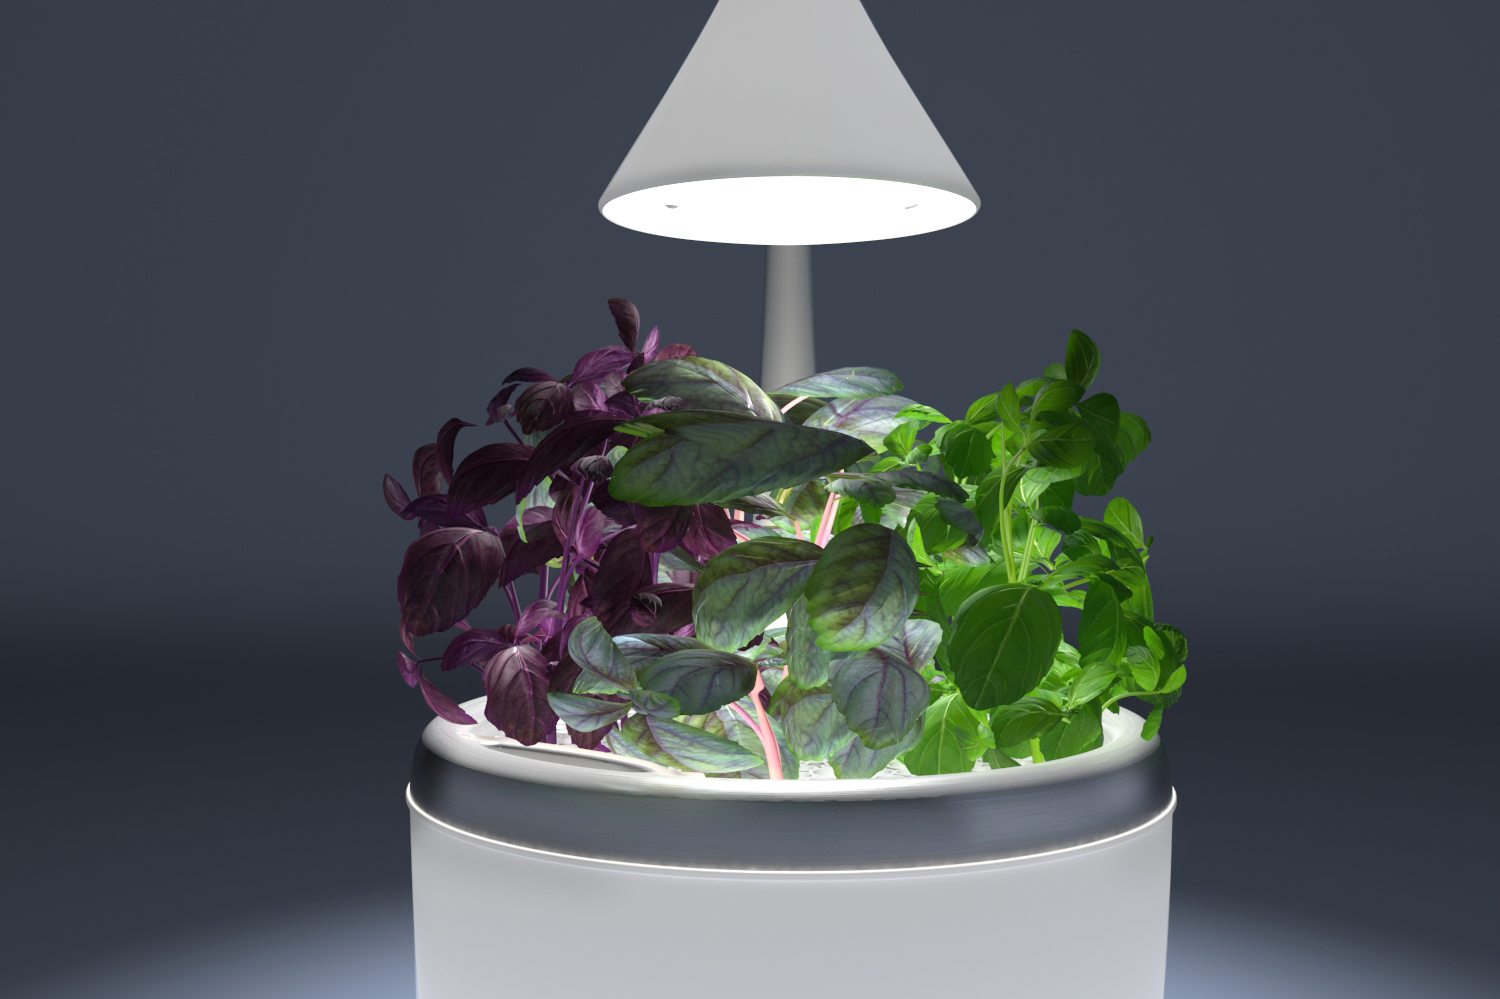 SproutsIO's Smart Growing System Will Revolutionize How You Get Your Greens